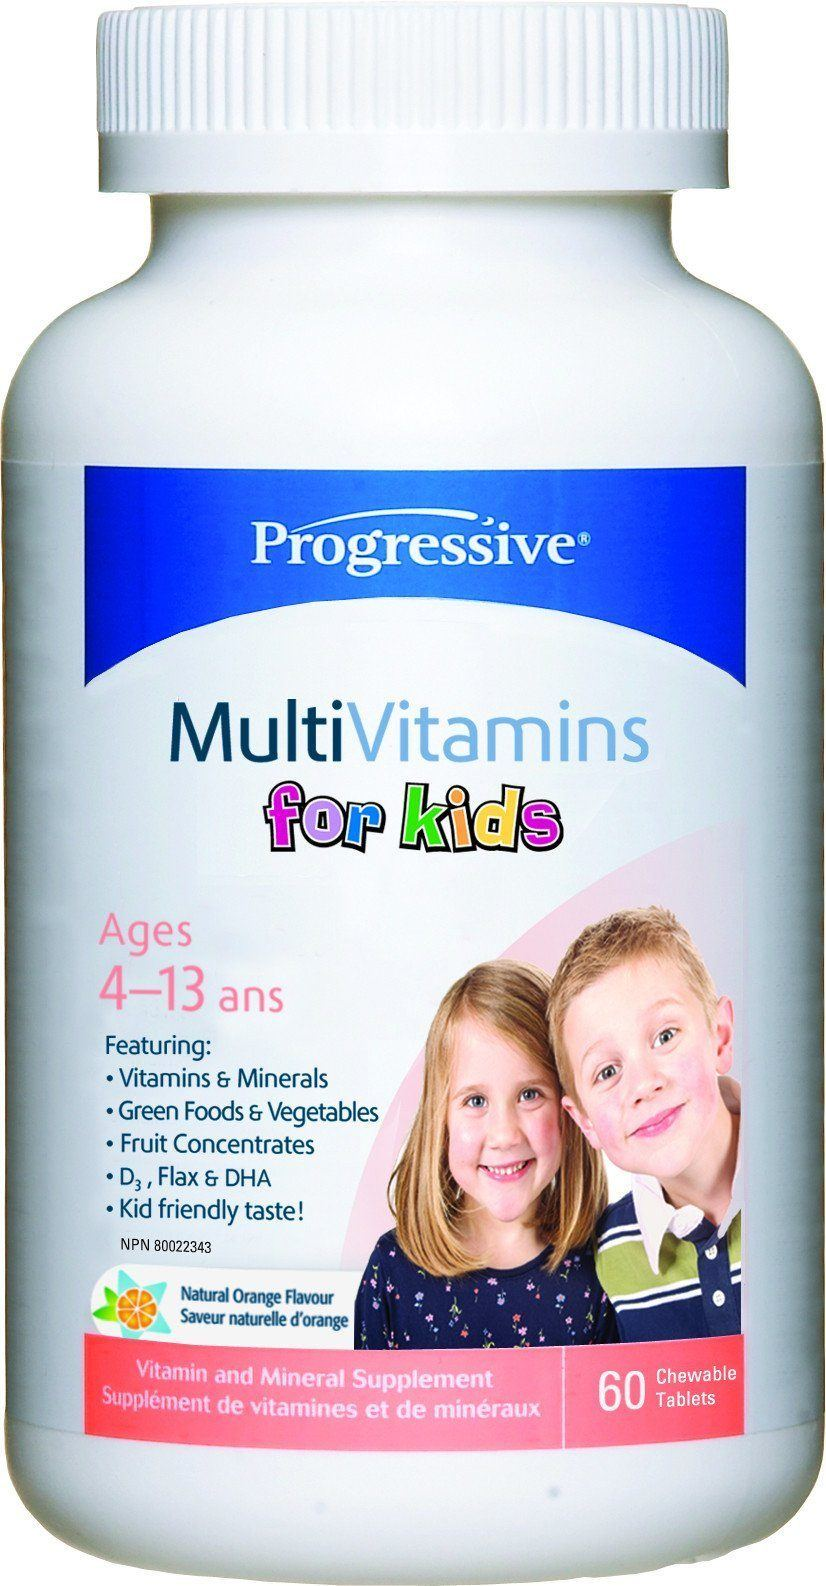 Supplements & Vitamins - Progressive - MultiVitamins For Kids, 60 Tabs